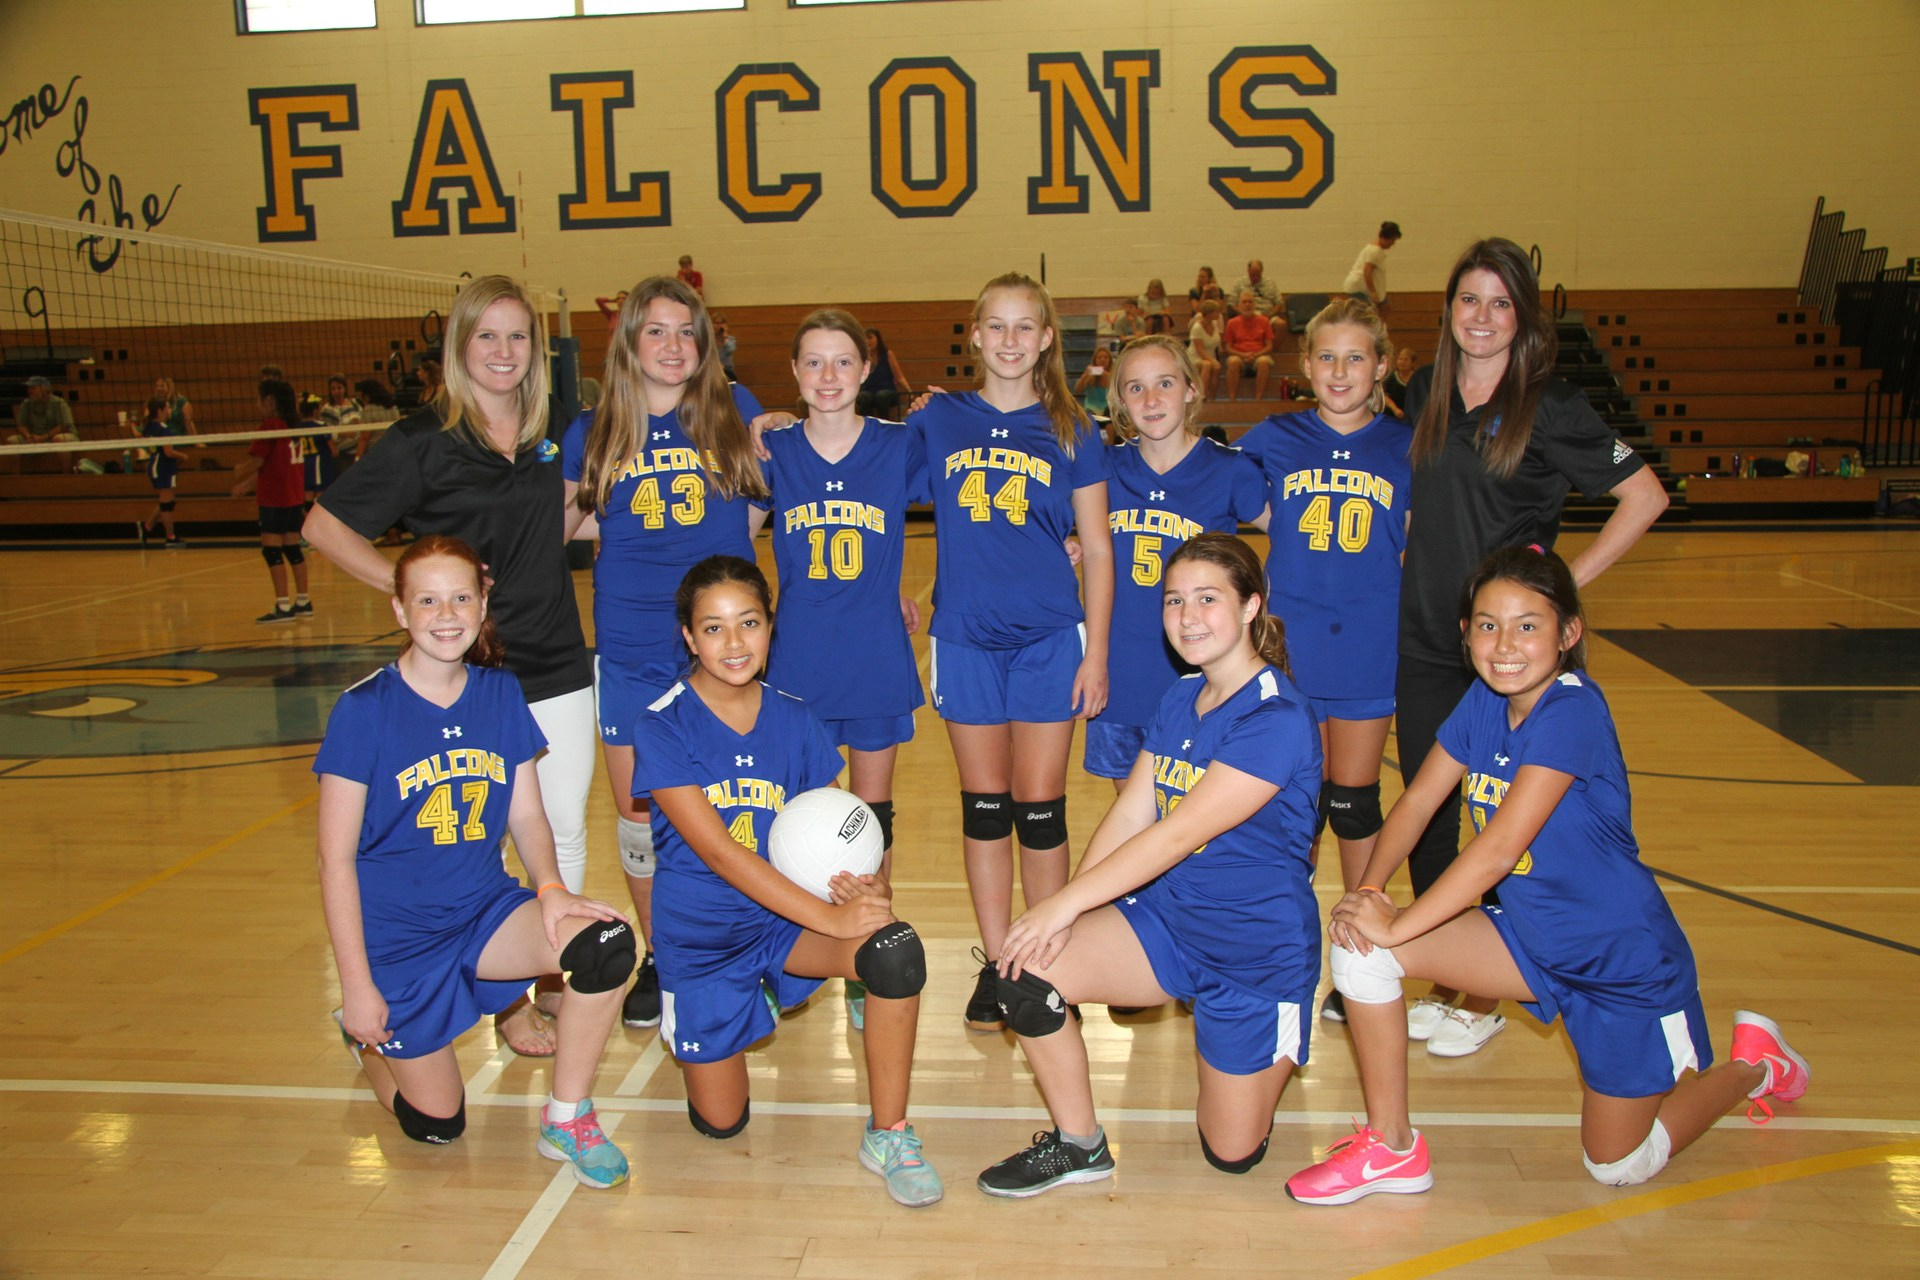 team photo of valley a girls volleyball